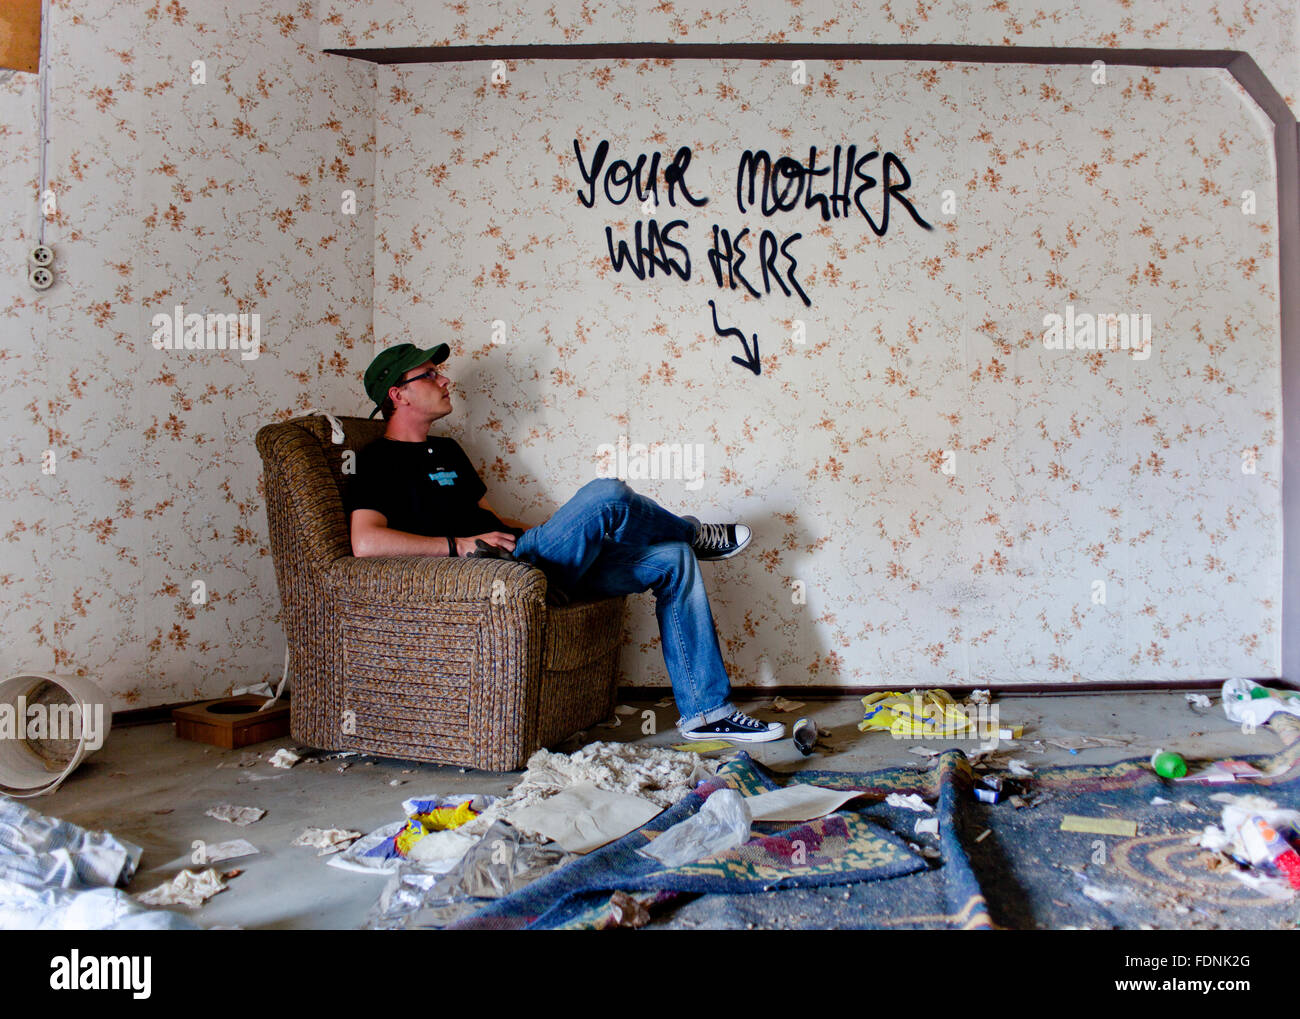 young man,chaos,rooms,disorder,messy - Stock Image